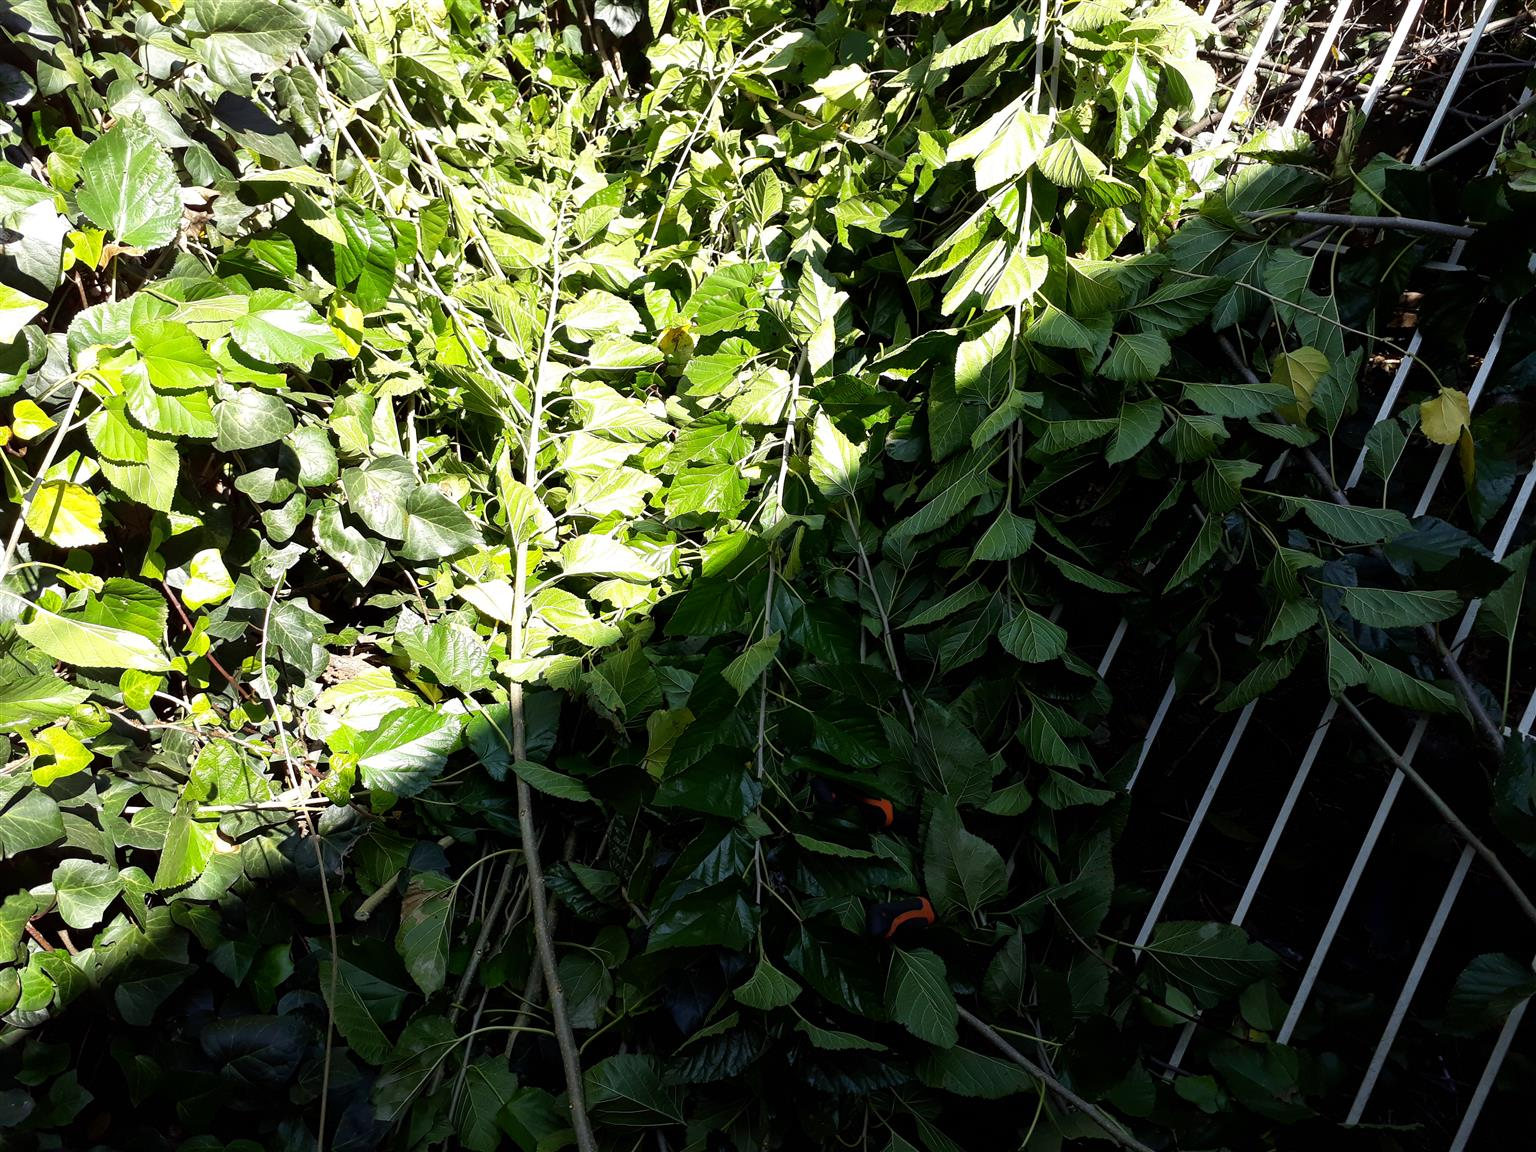 Mulberry leaves for sale